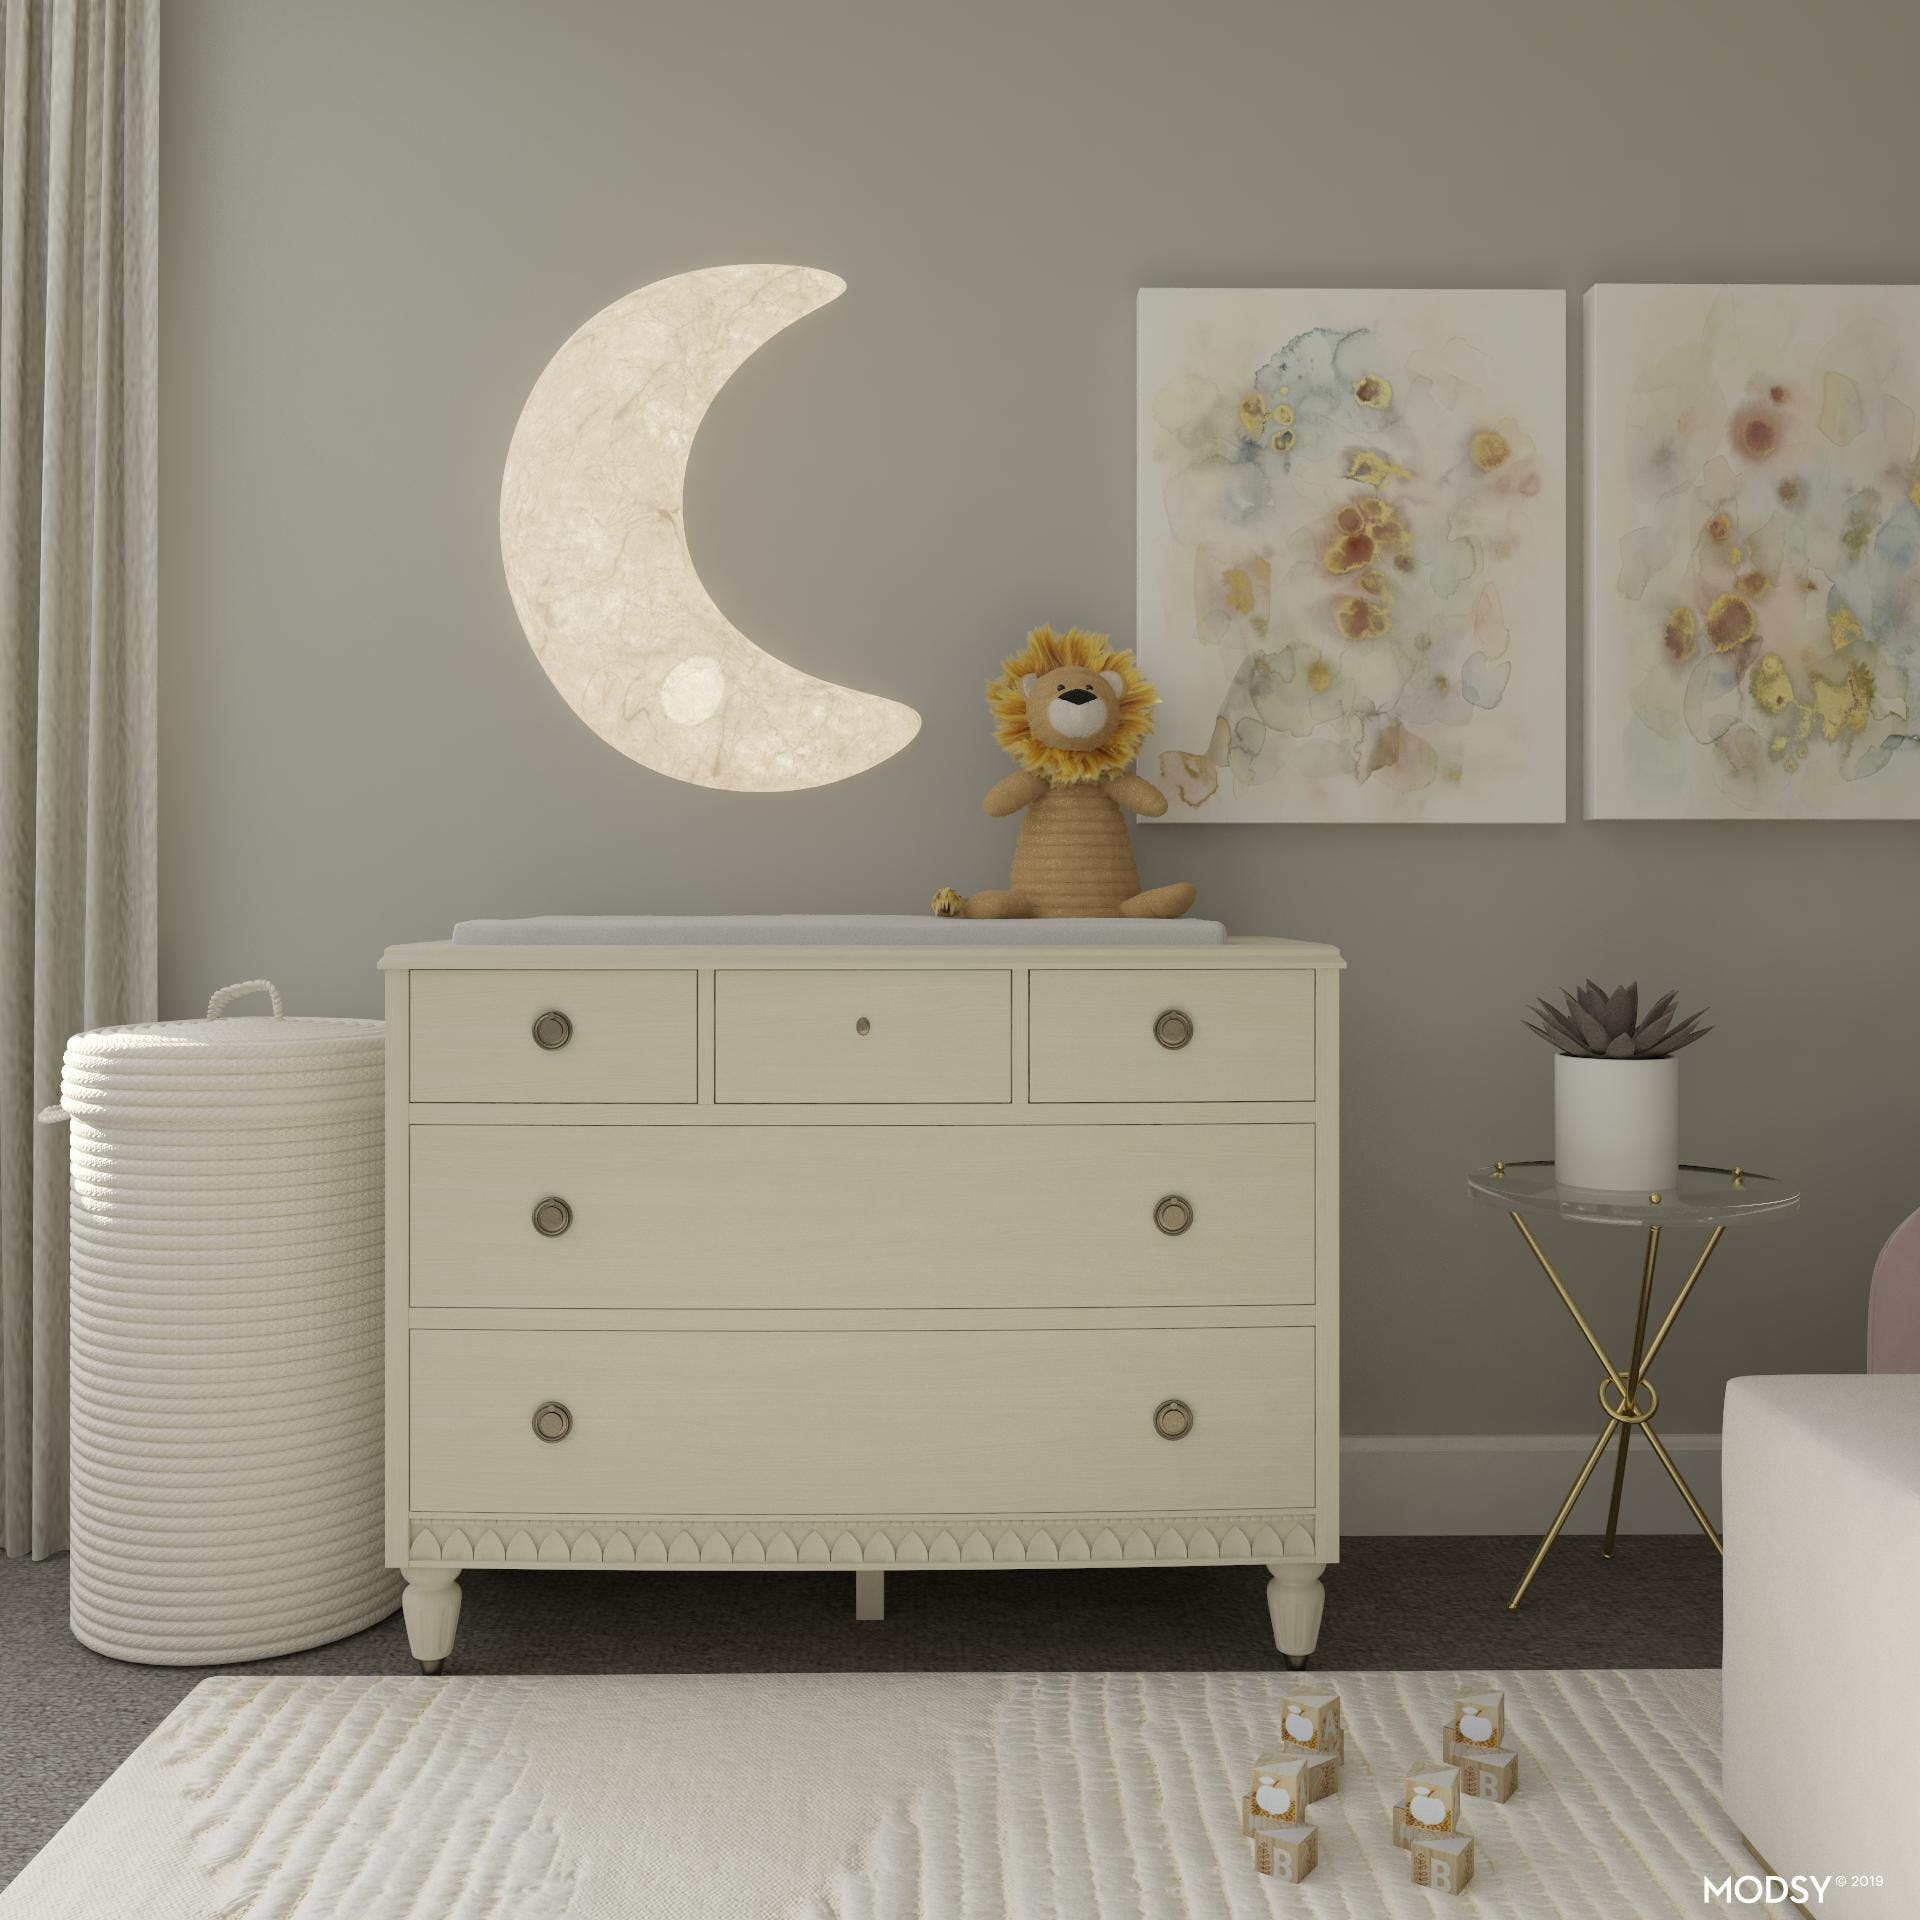 Soft Textures In The Nursery